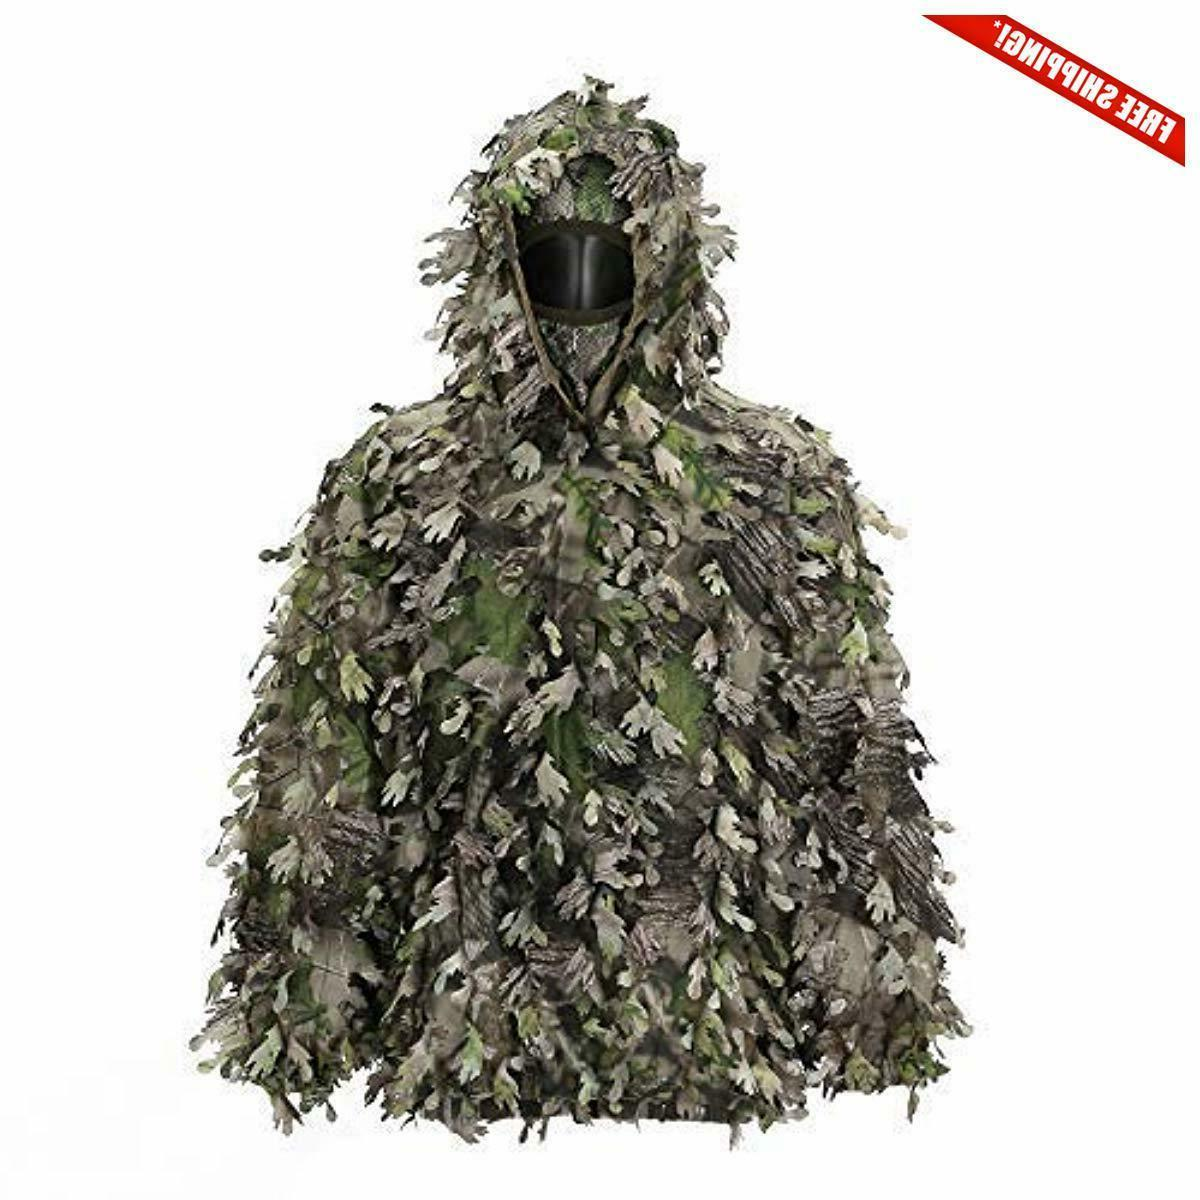 North Ghillie Suit Lightweight Breathable Standard